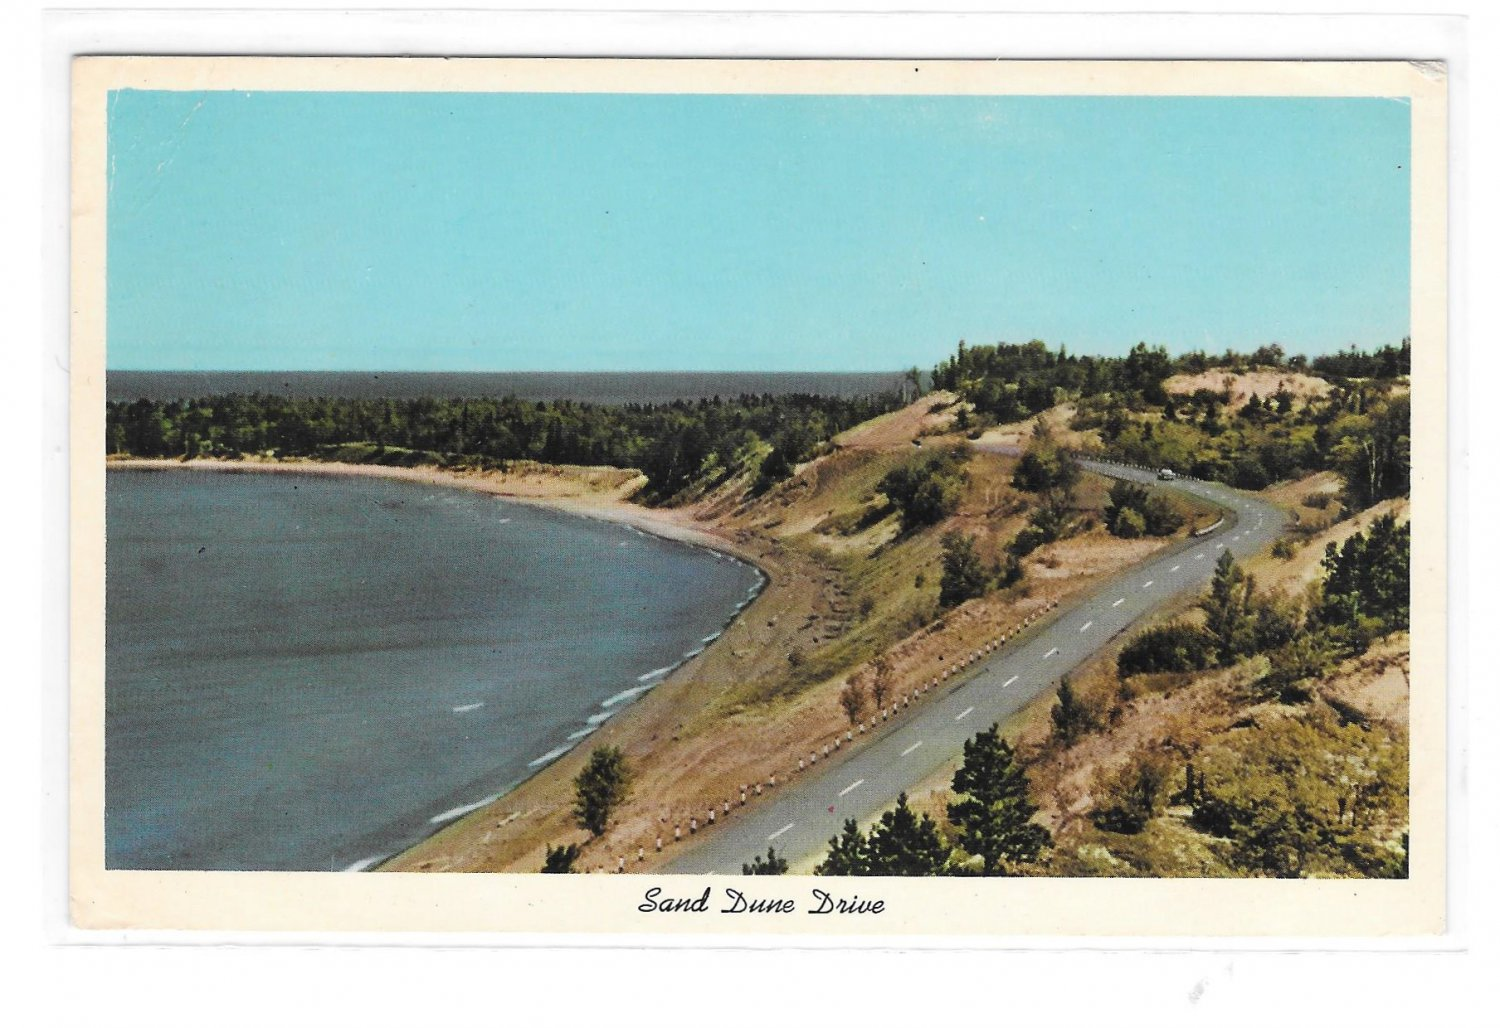 Sand Dune Drive Eagle River and Eagle Harbor Michigan Copper Country Keweenawland Postcard